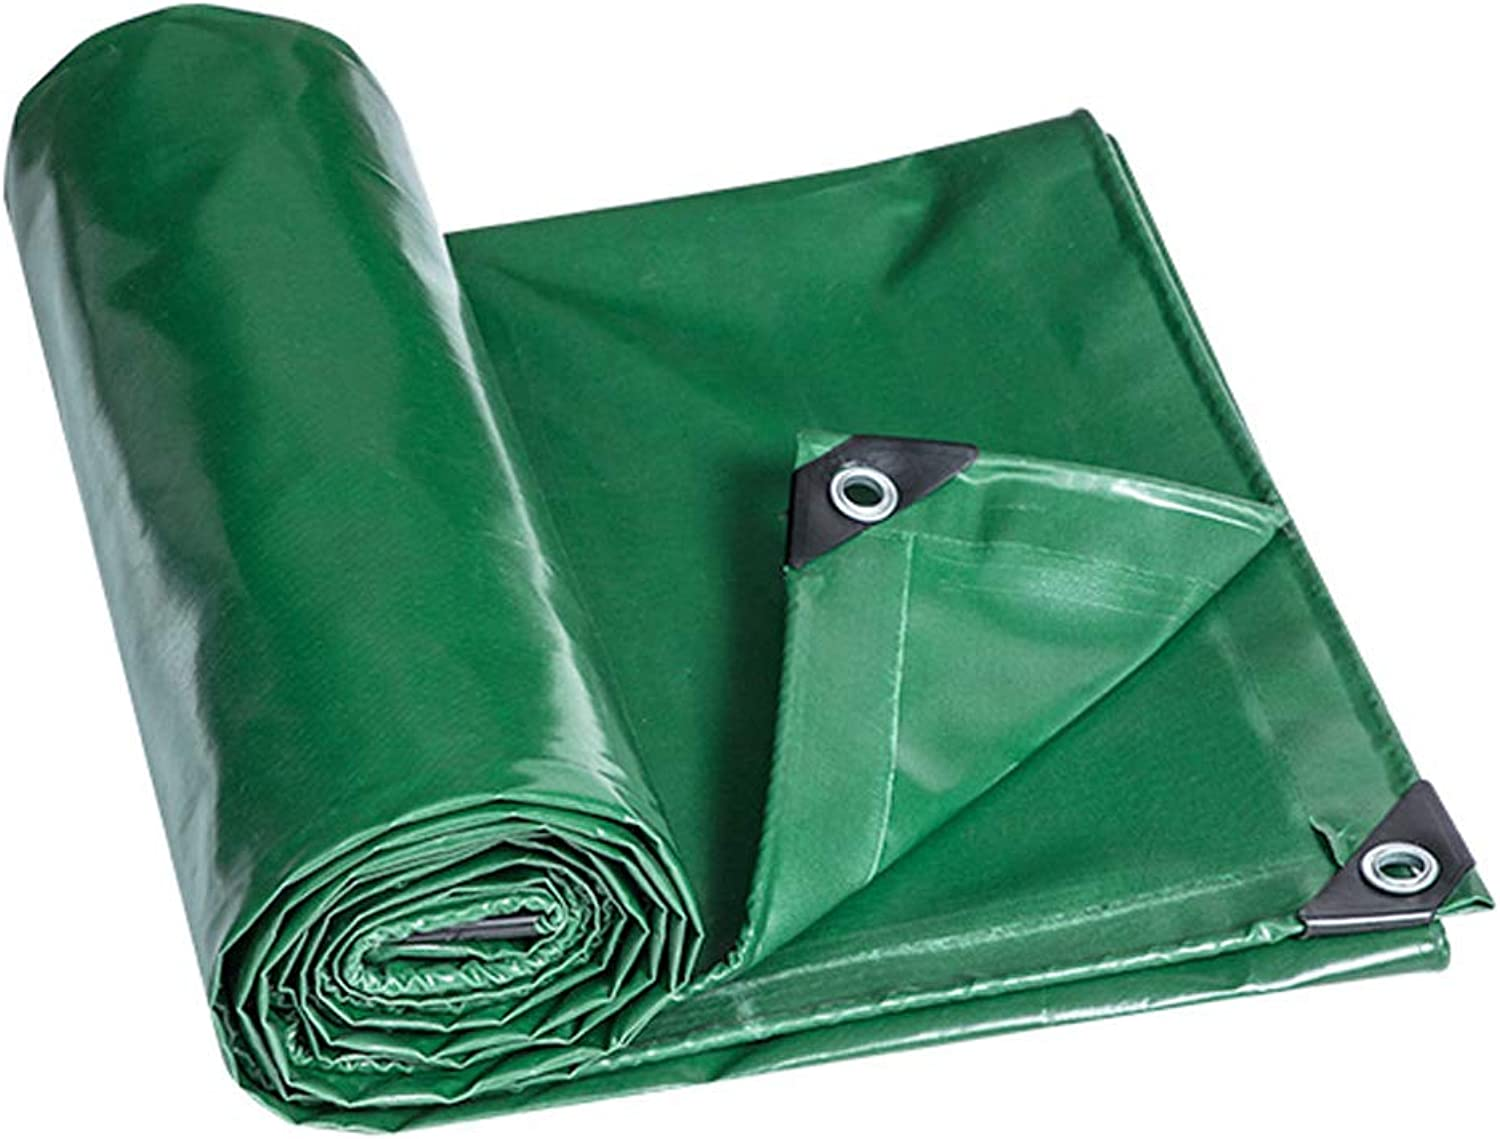 Waterproof Tarpaulin MultiPurpose Heavy Duty Easy to Fold for Camping Fishing Hiking Greenhouses Uv Resistant Cover Shelter 530g M2